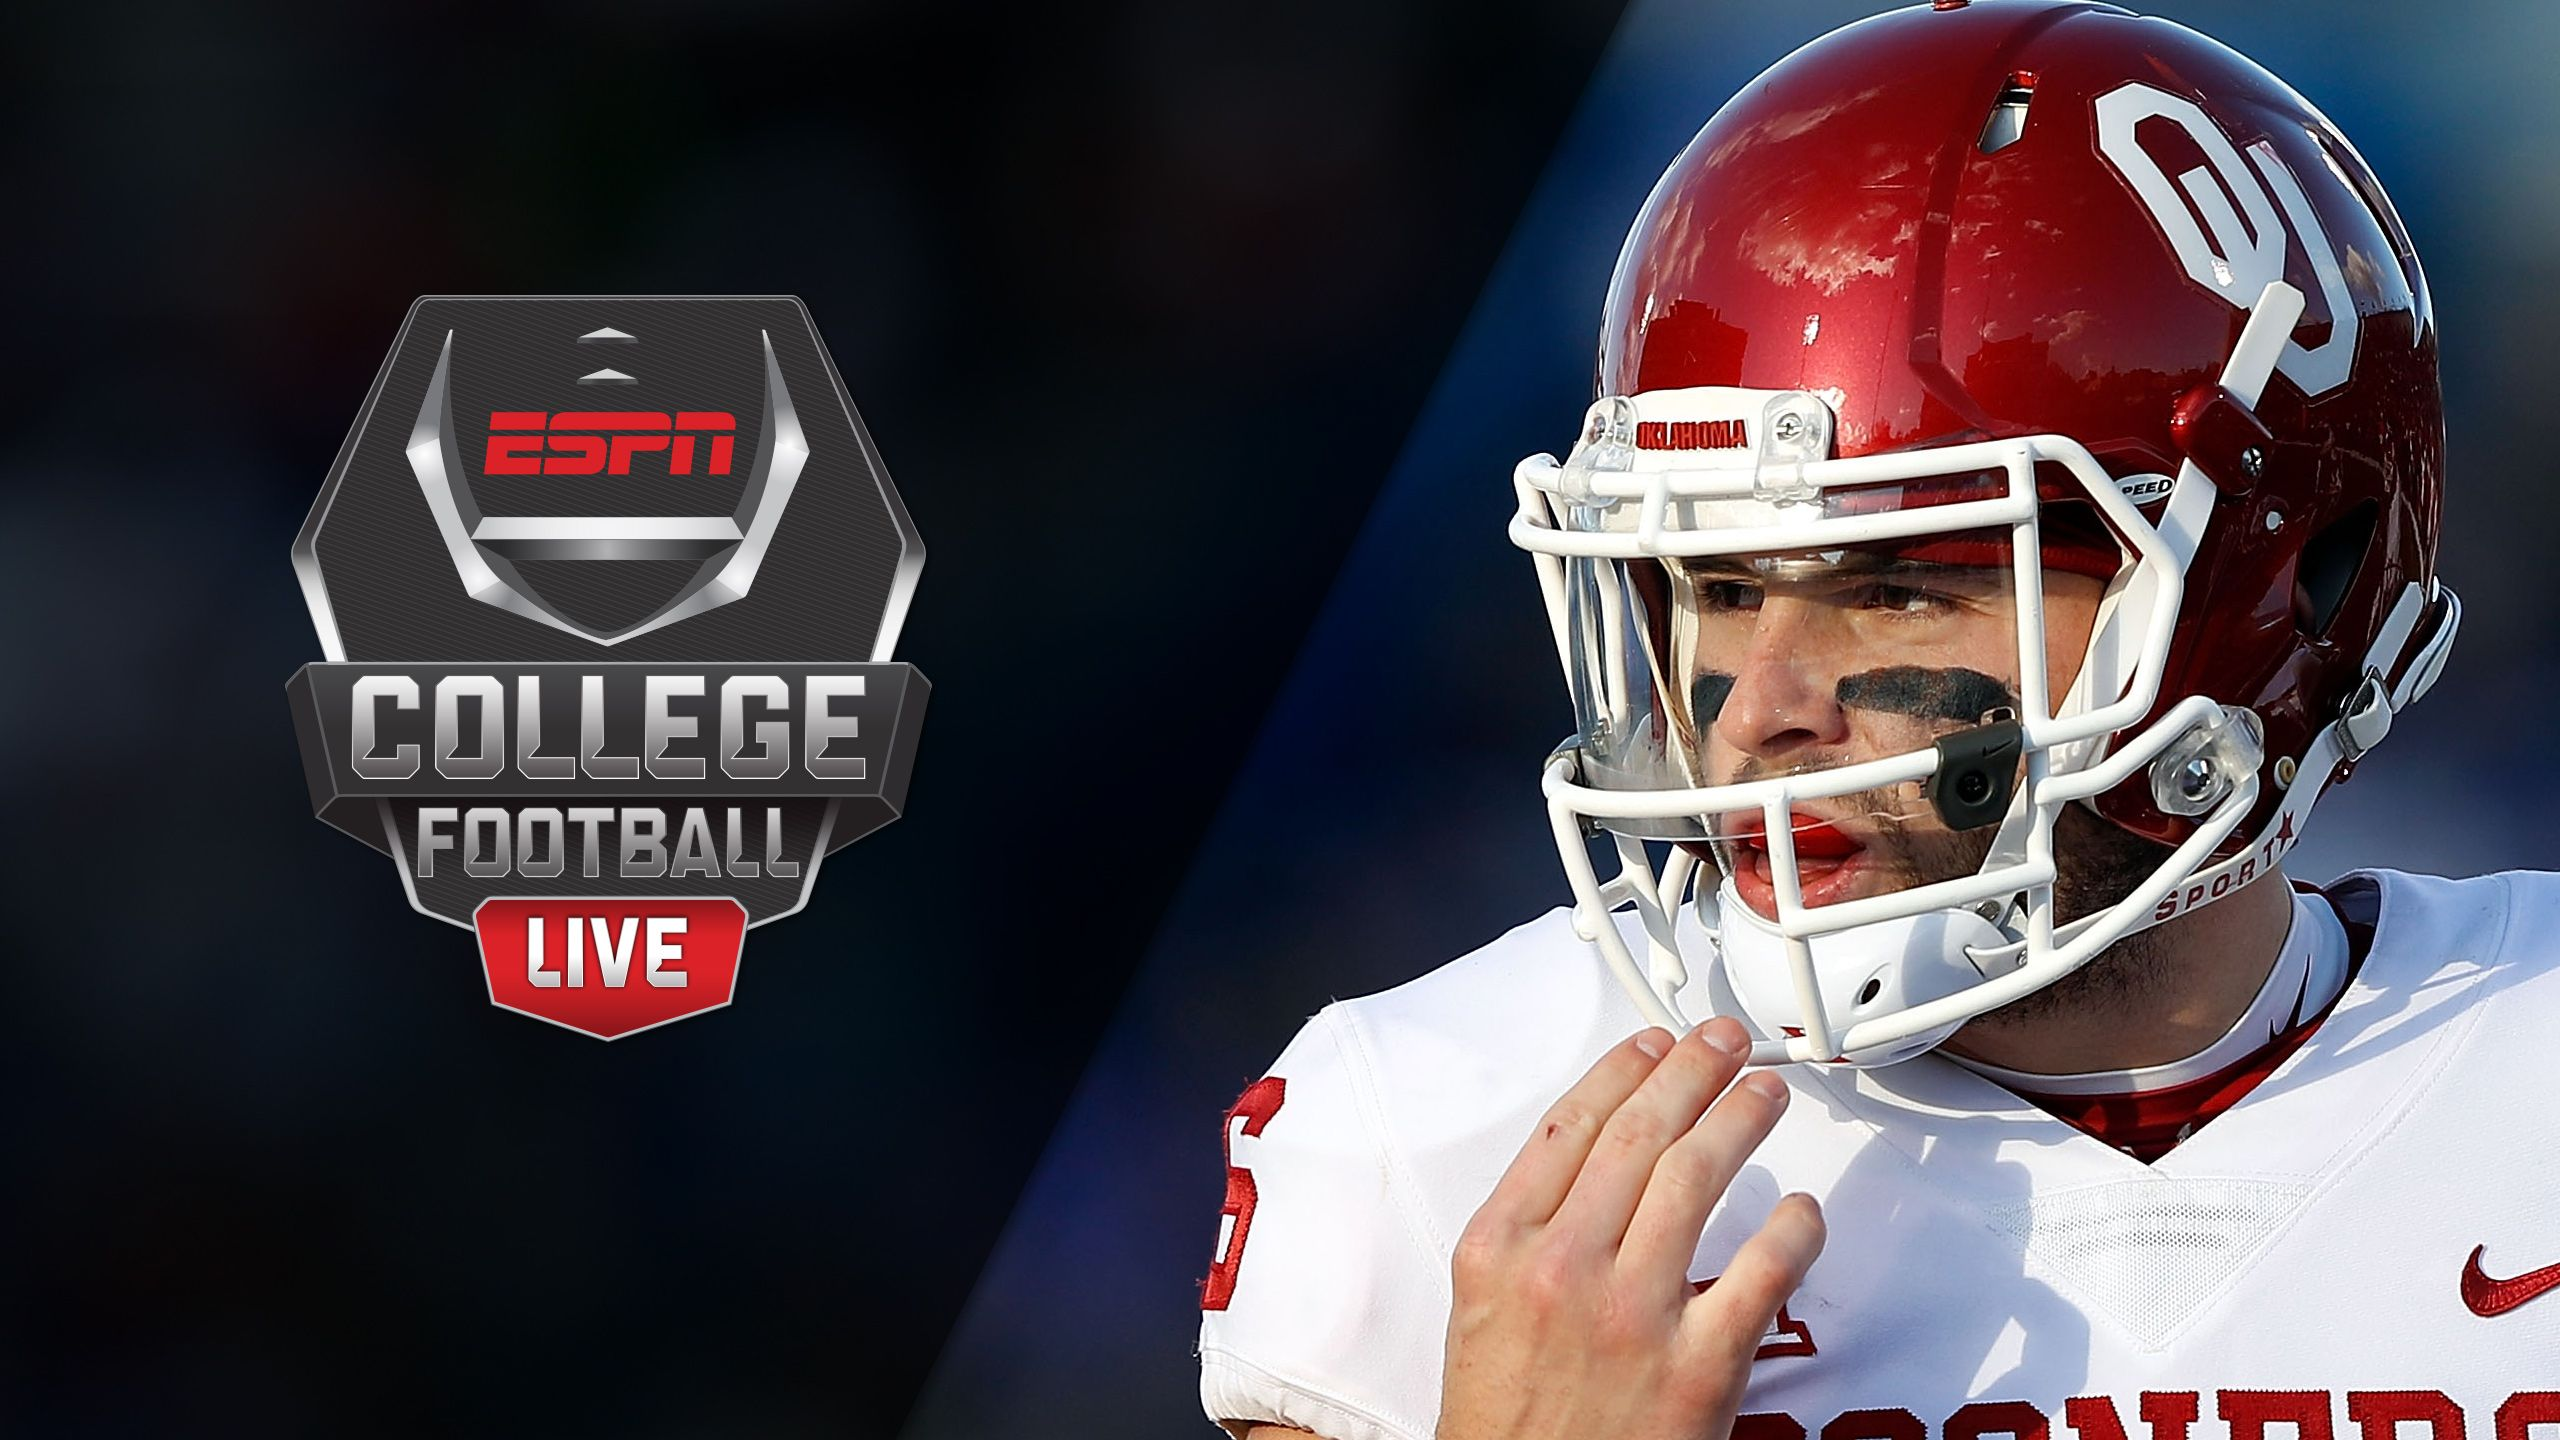 Mon, 11/20 - College Football Live